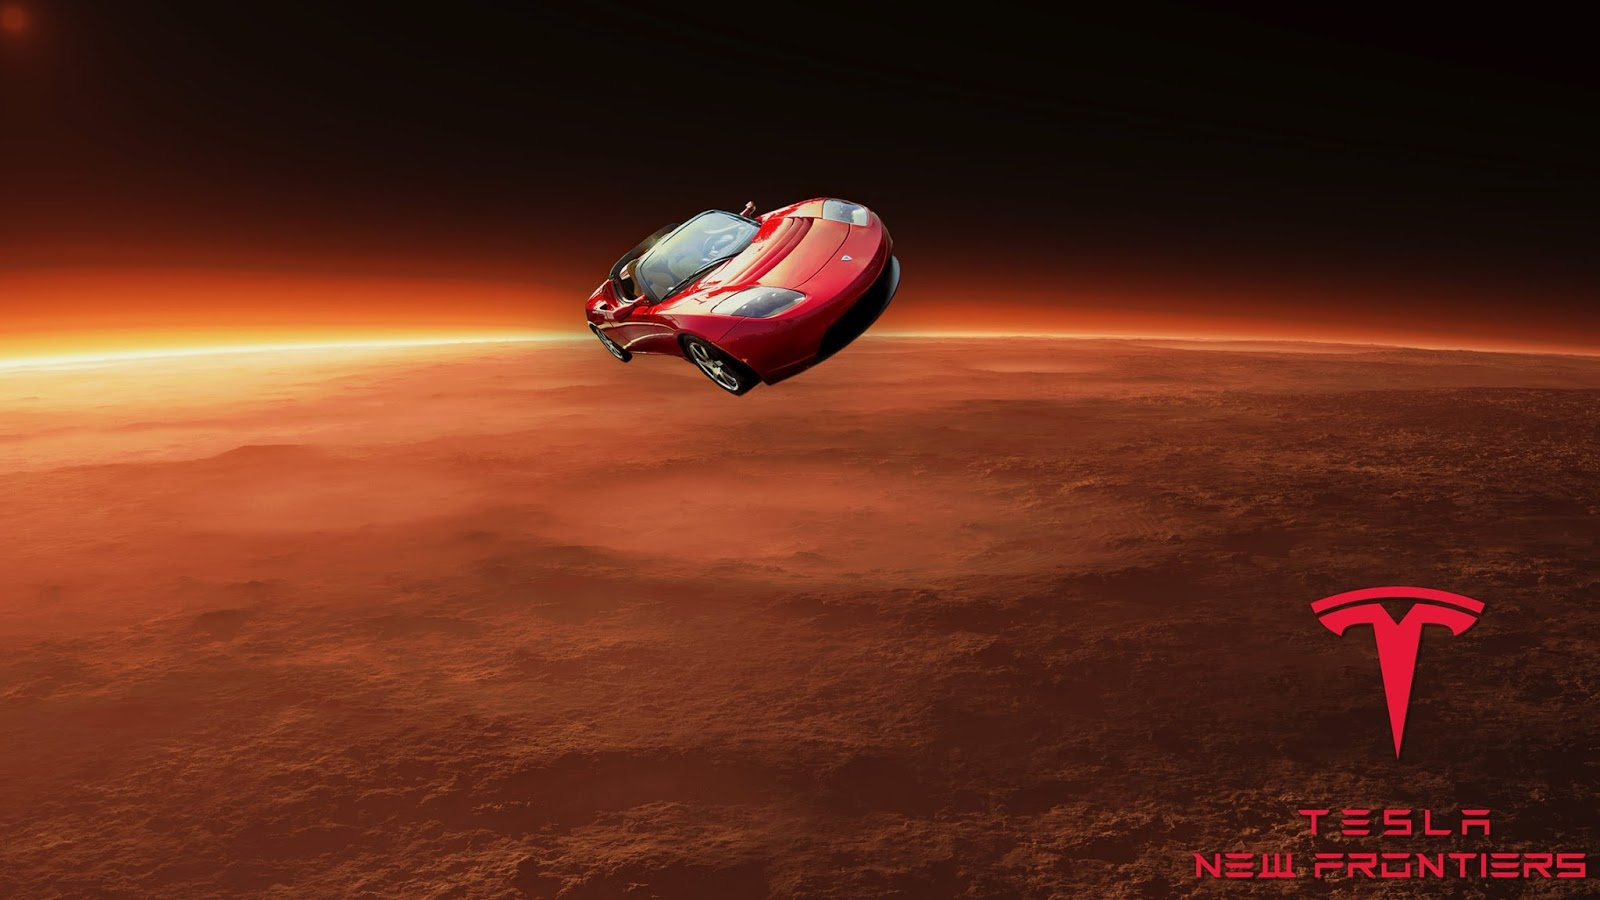 SpaceX Tesla Roadster traveling to Mars